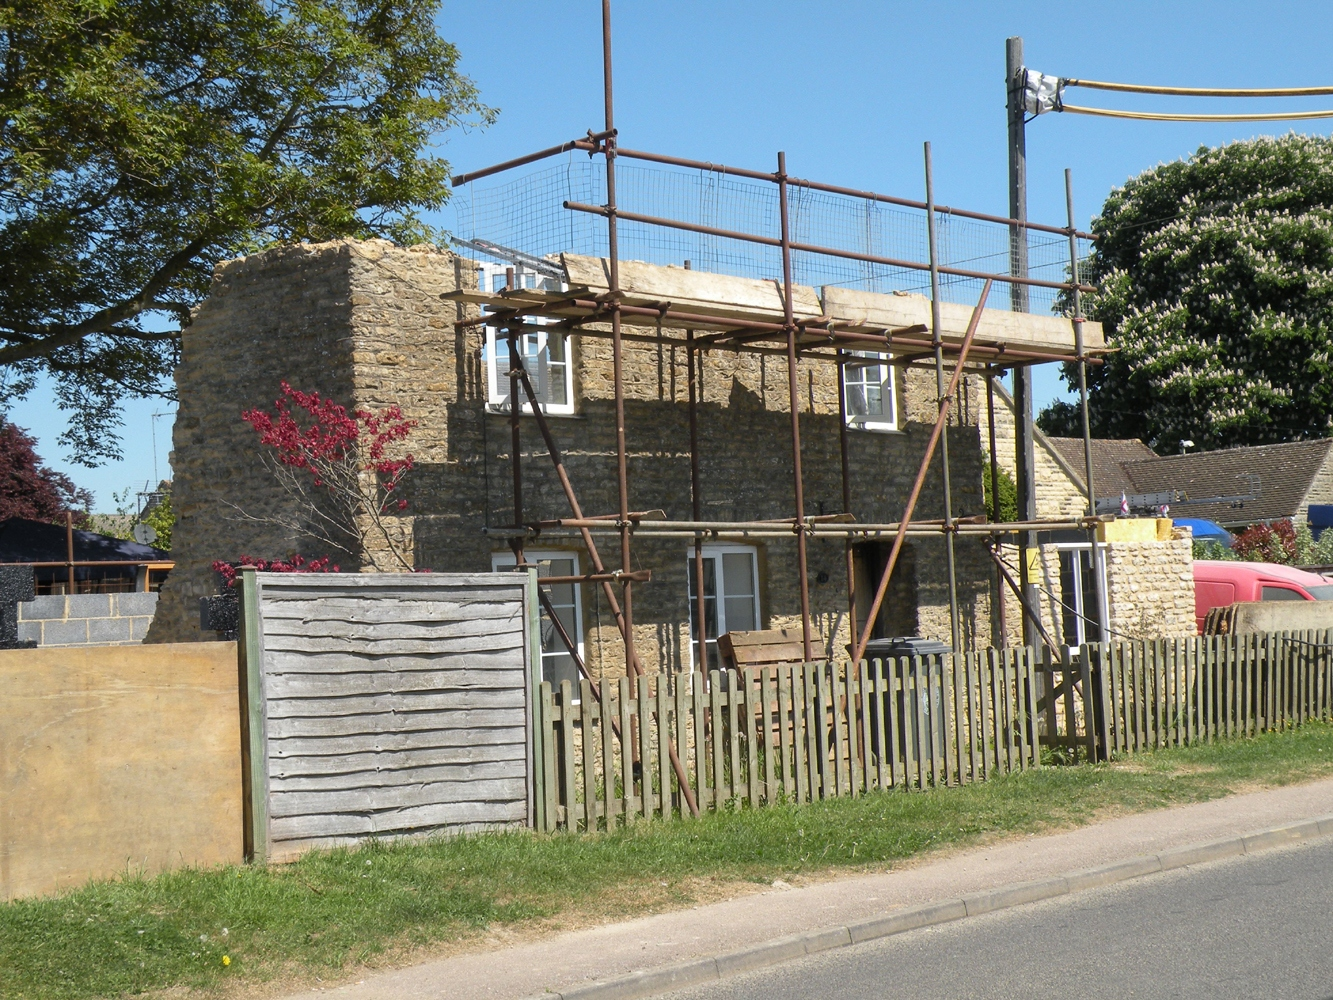 May 2010 House rebuild, 14 Enstone Road.